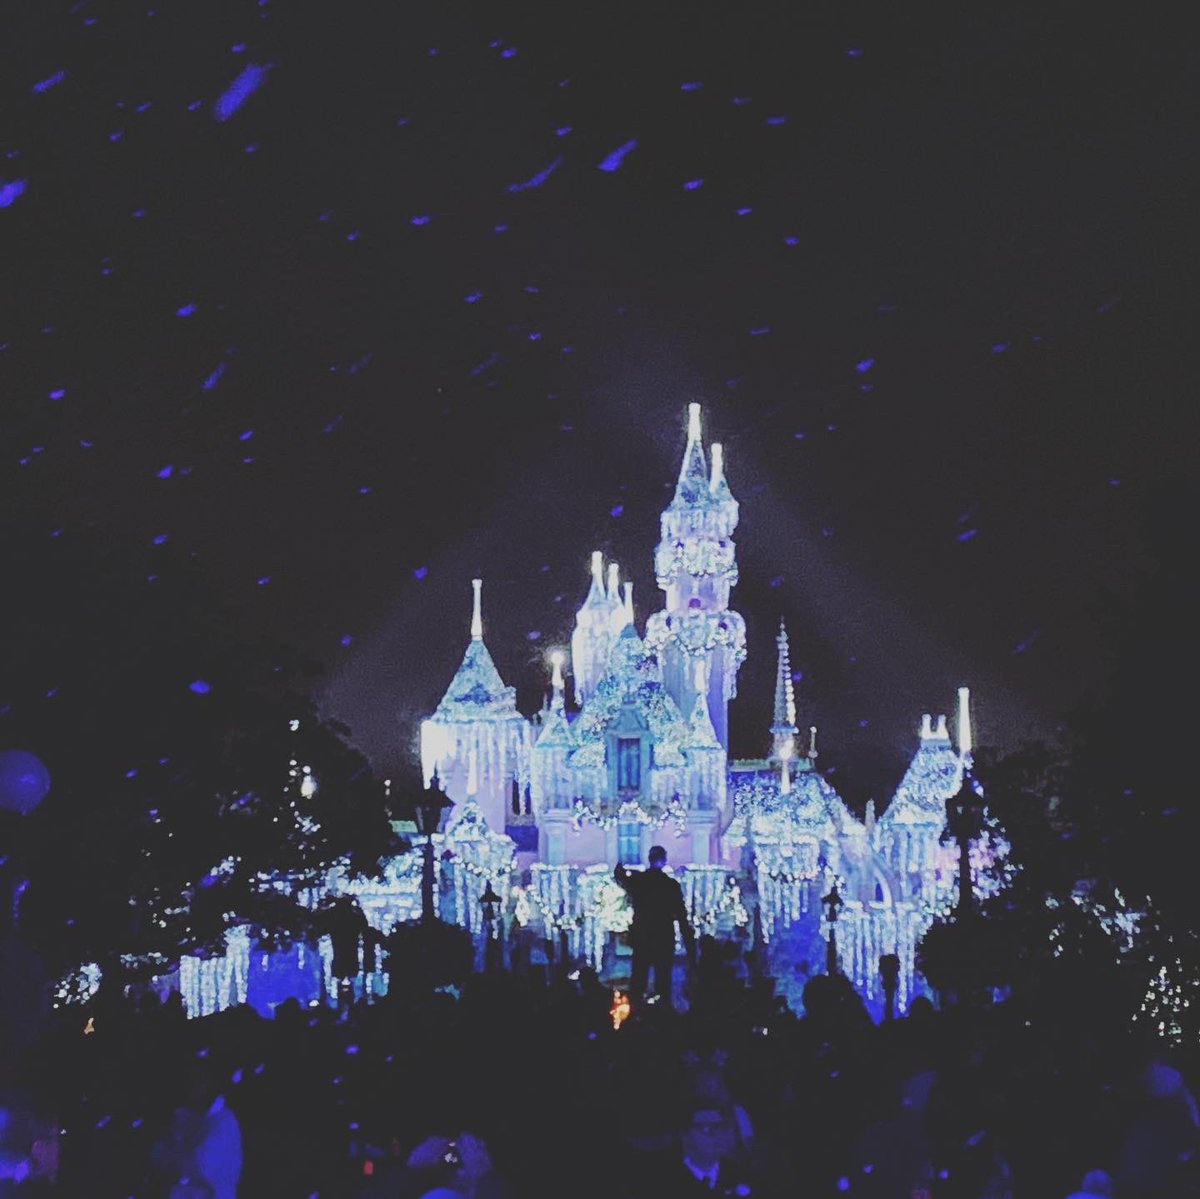 Let it snow! Let it snow! Let it snow! ❄️🏰❄️#Disneyland #disney #Disneyholidaycelebration #snow #snowfall